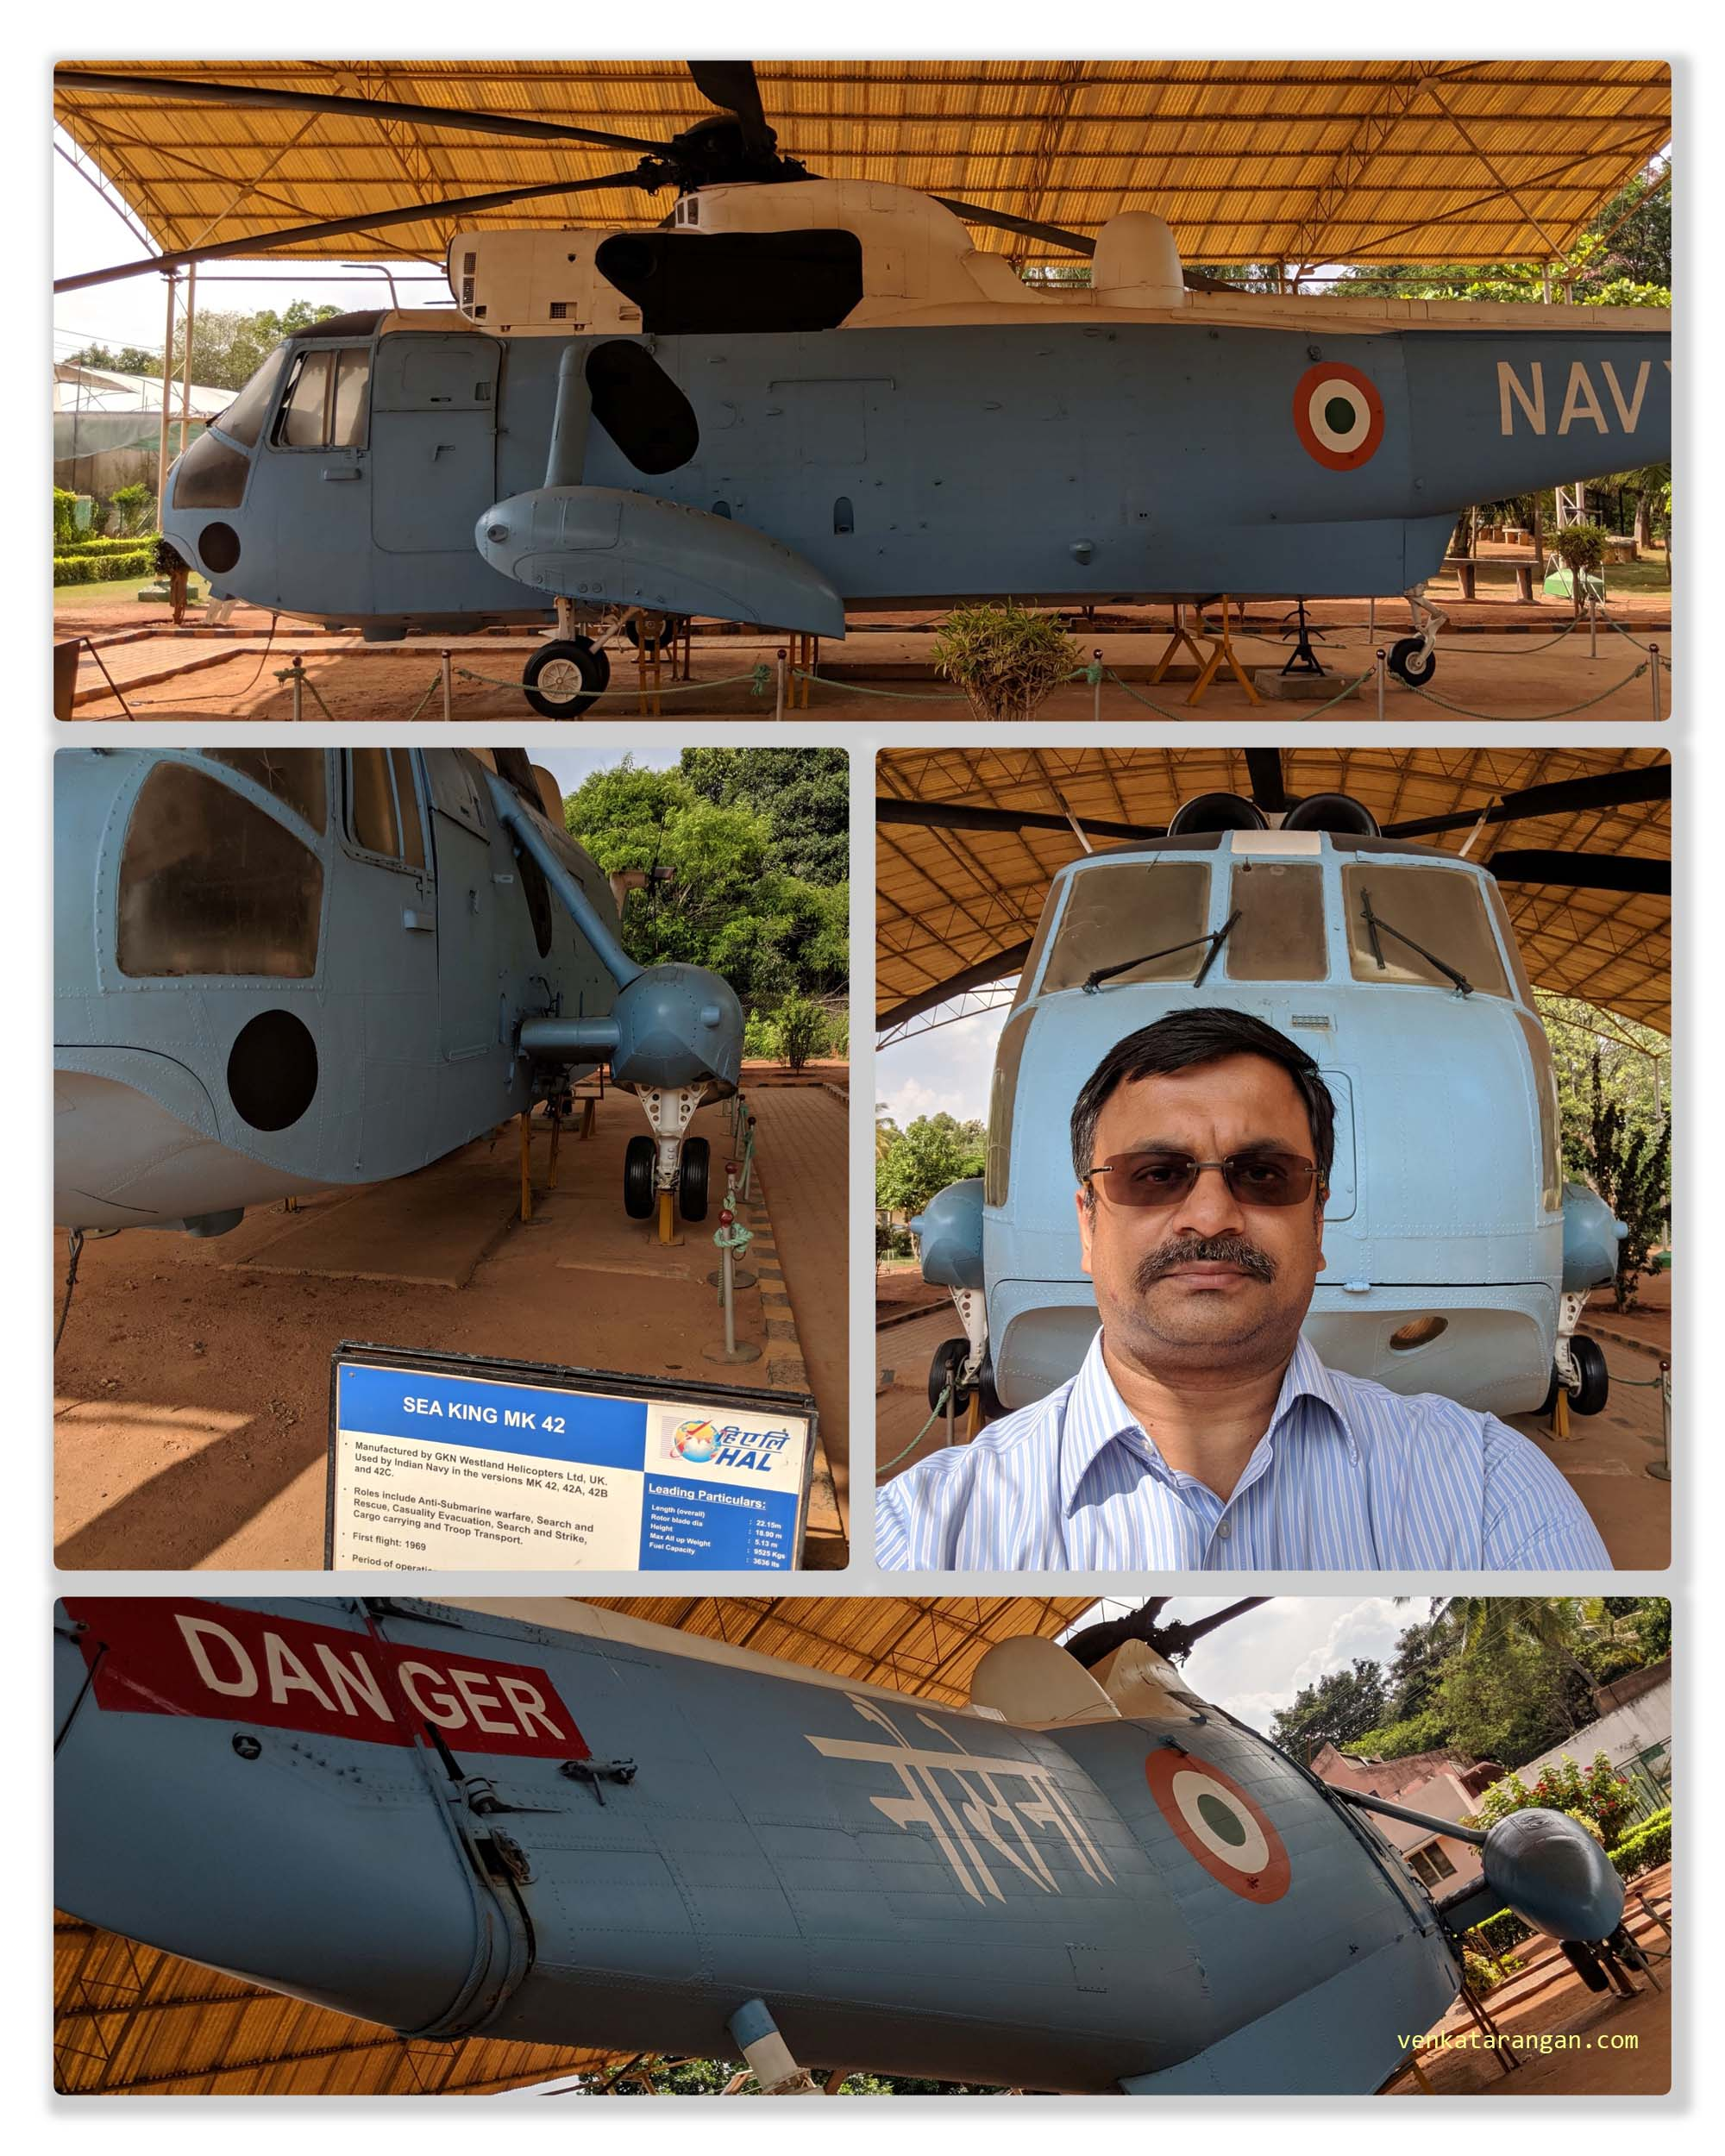 SEA KING MK 42 made by GKN Westland Helicopters, UK and used extensively by Indian Navy — at HAL Aerospace Museum.